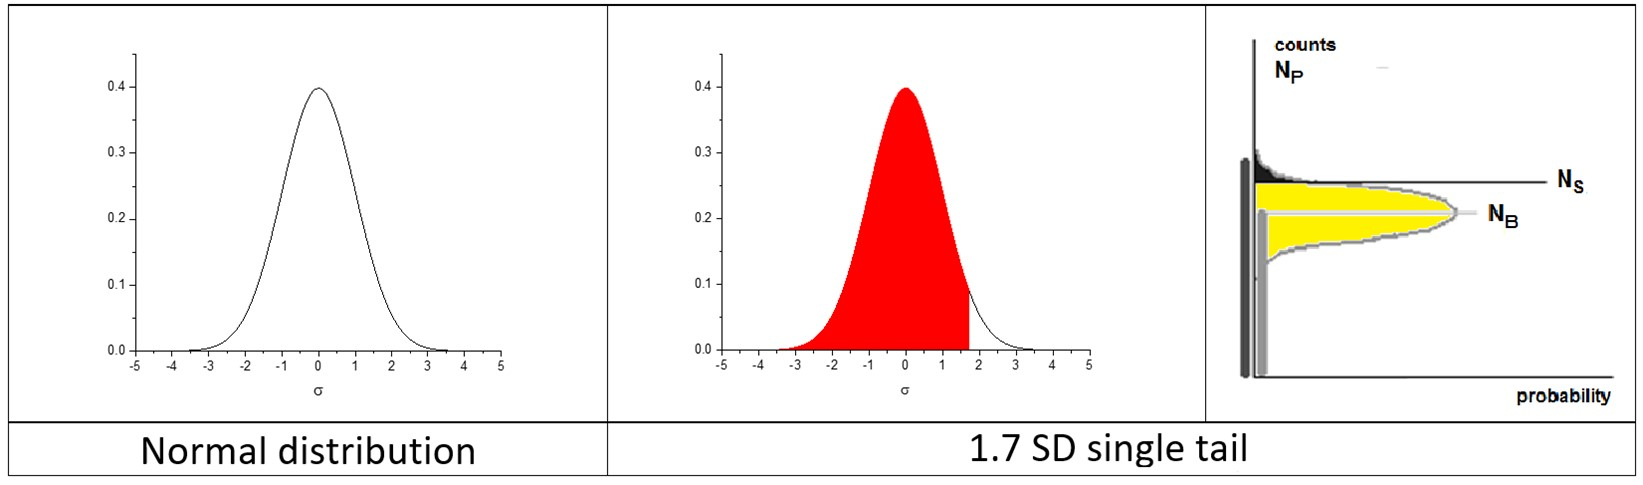 Figure 3. Single-tail normal distribution. NB is the background mean level.